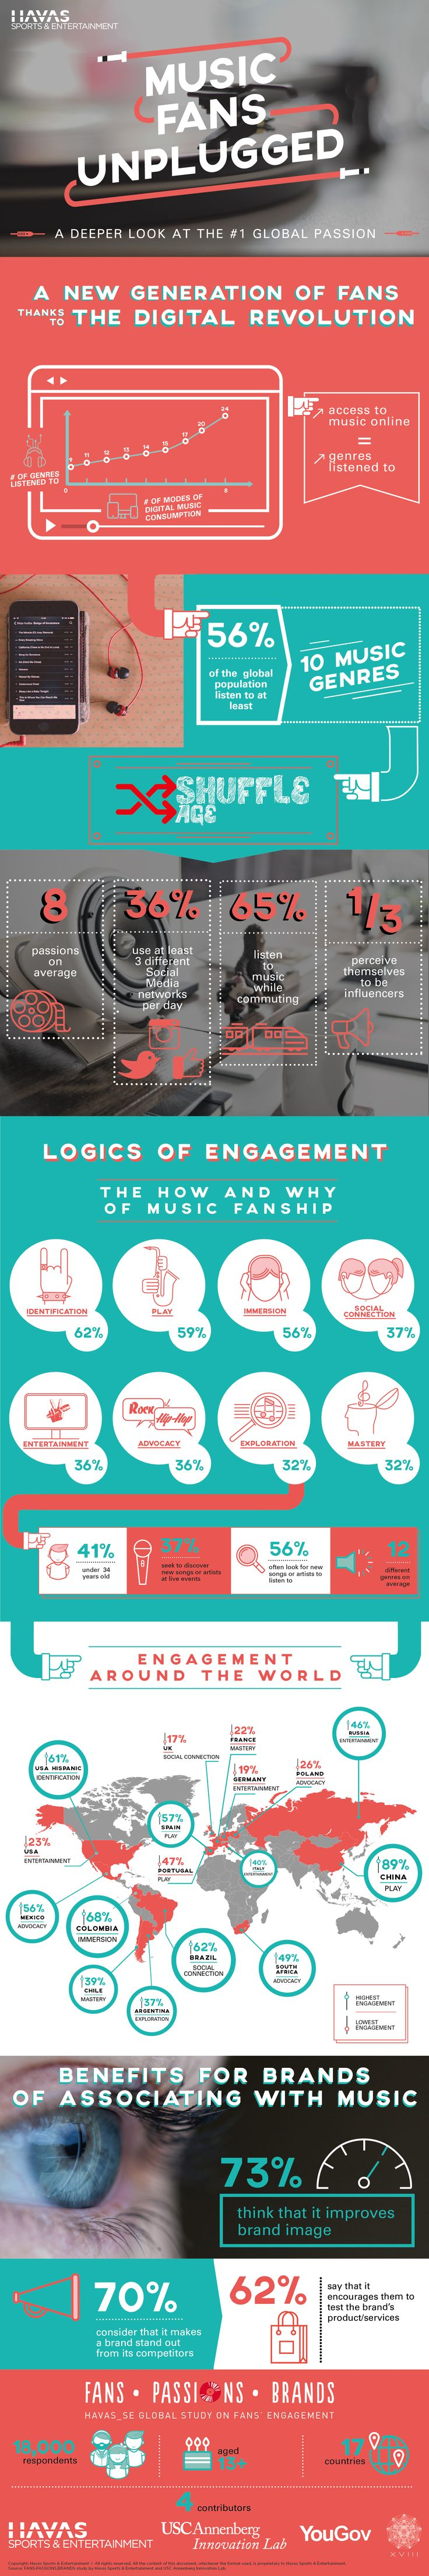 An Extensive Study From Havas Sports U0026 Entertainment Into Global Music  Consumption Patterns Has Unearthed A Number Of Surprising Findings In The  UK Market.